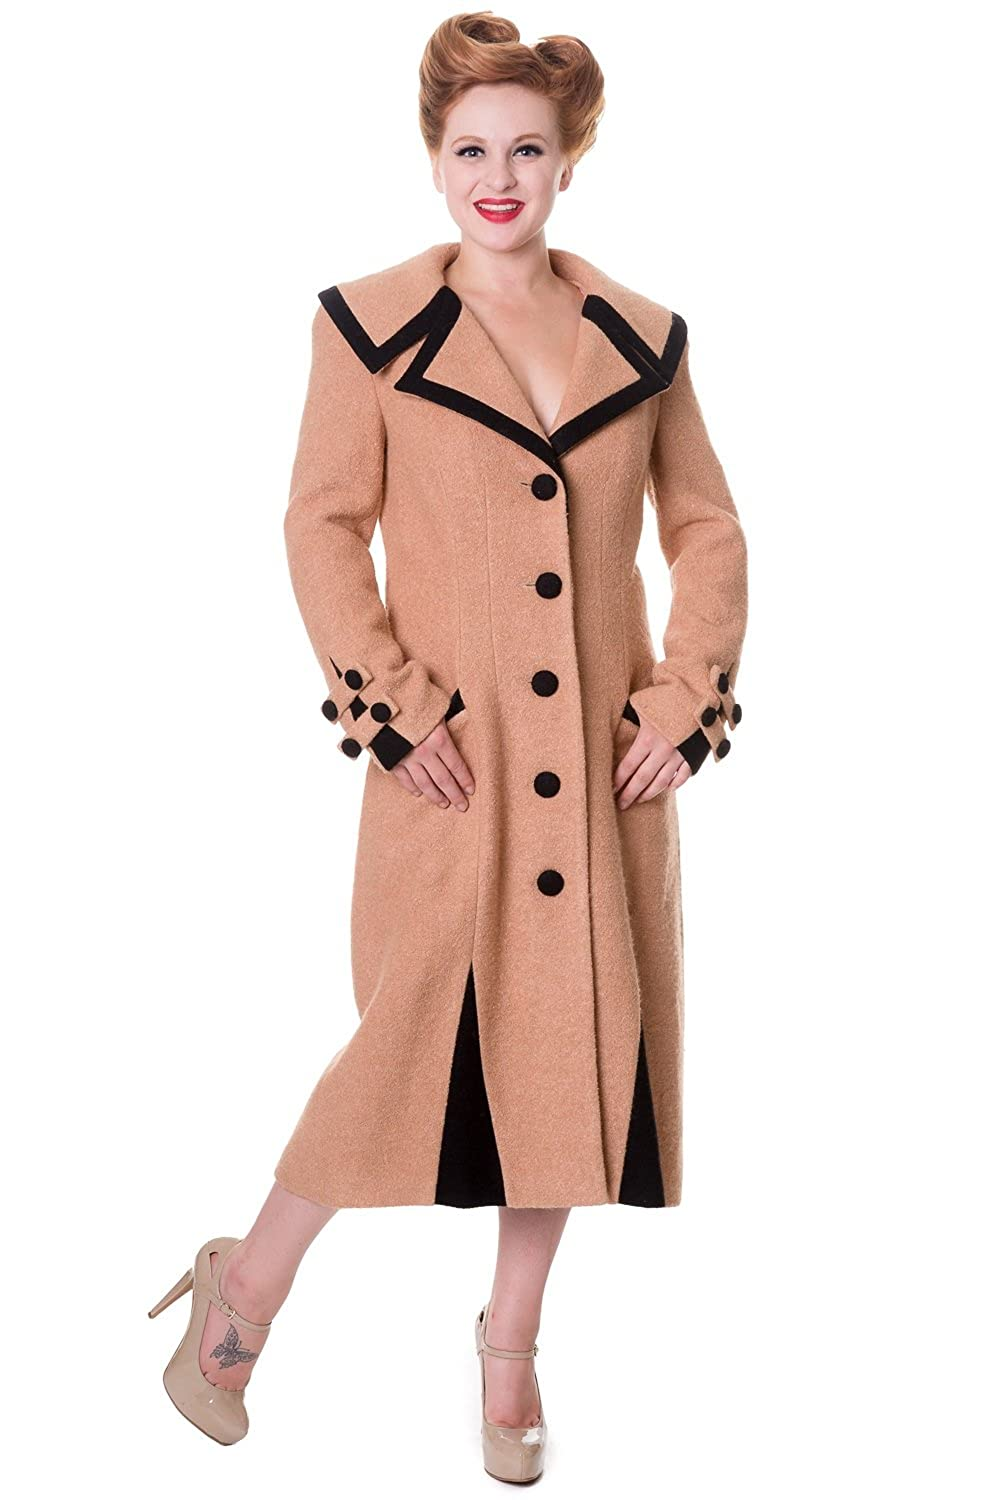 Vintage Coats & Jackets | Retro Coats and Jackets Banned Long Vintage Button Coat - Black or Camel £93.99 AT vintagedancer.com